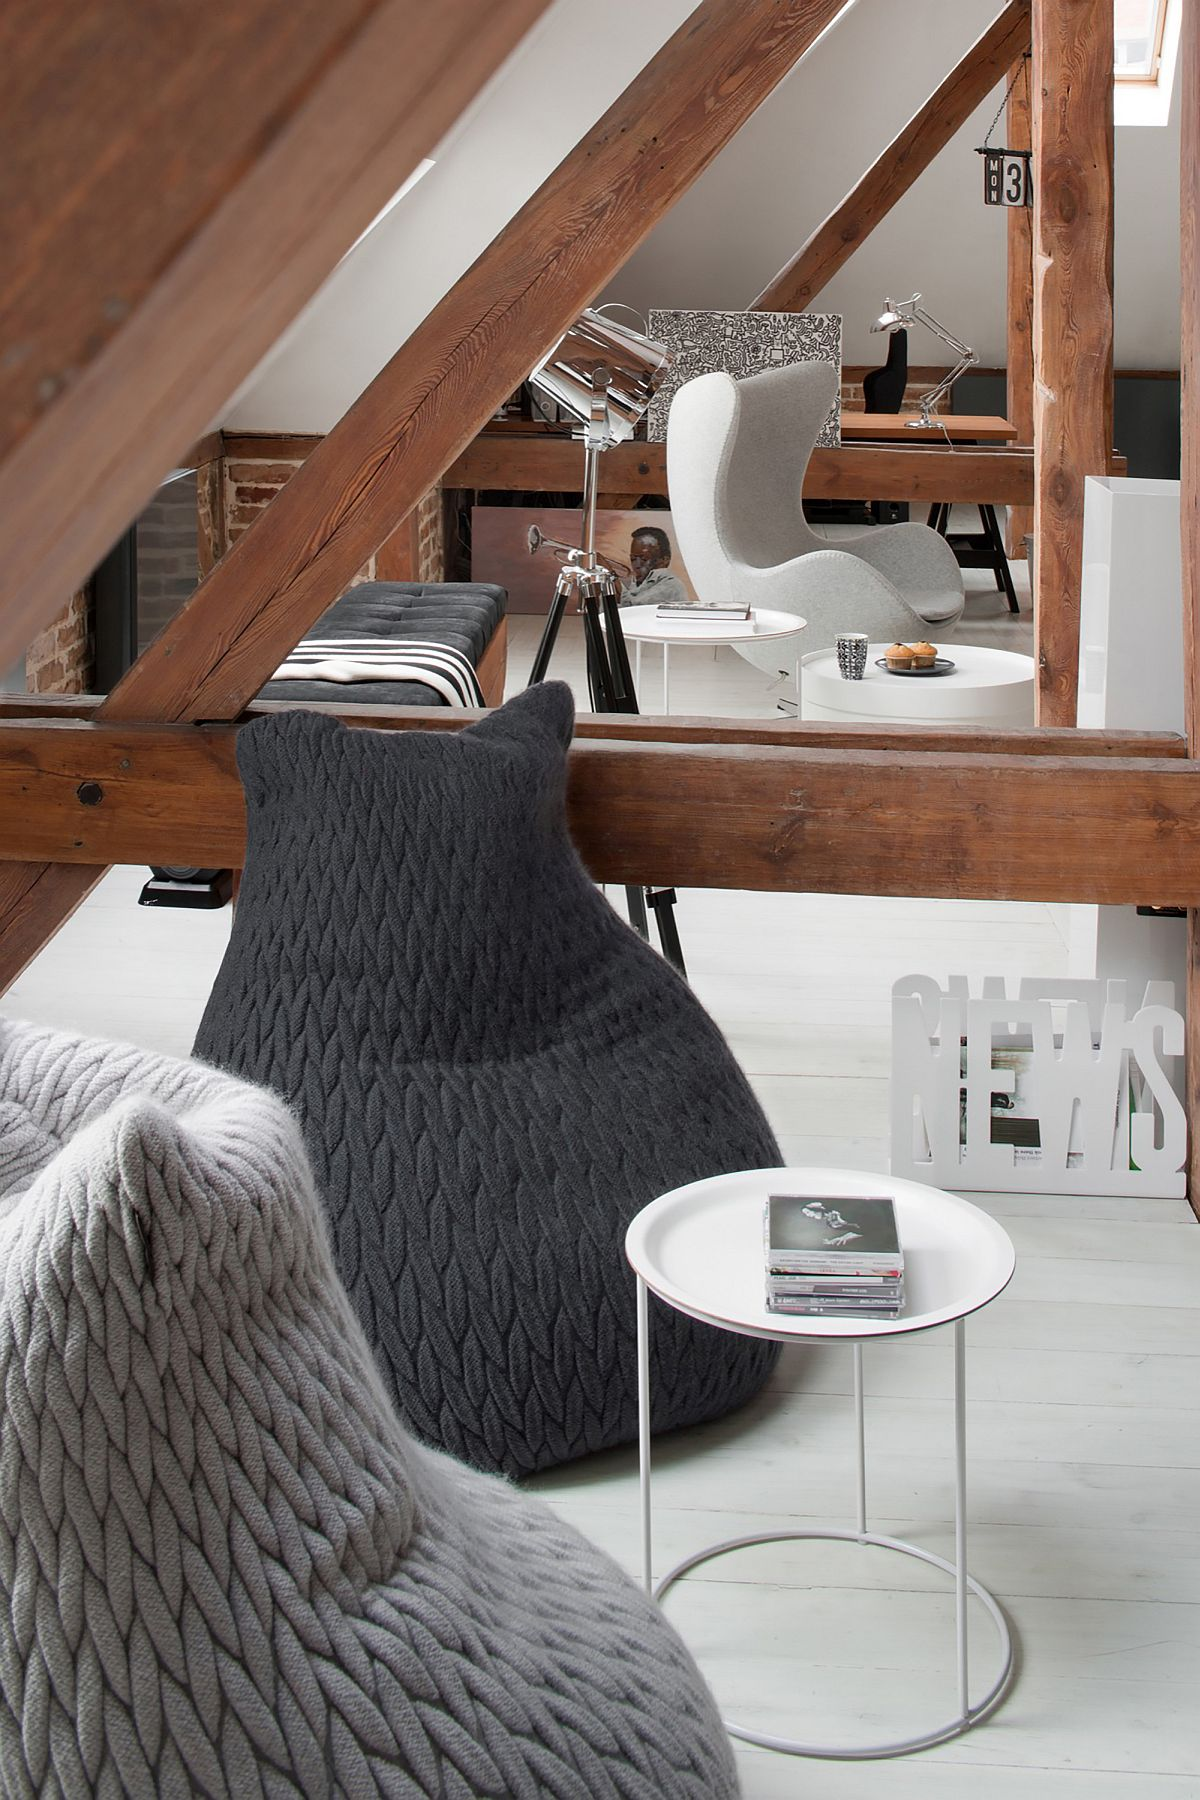 Comfy, custom decor for the stylish apartment in Poznan